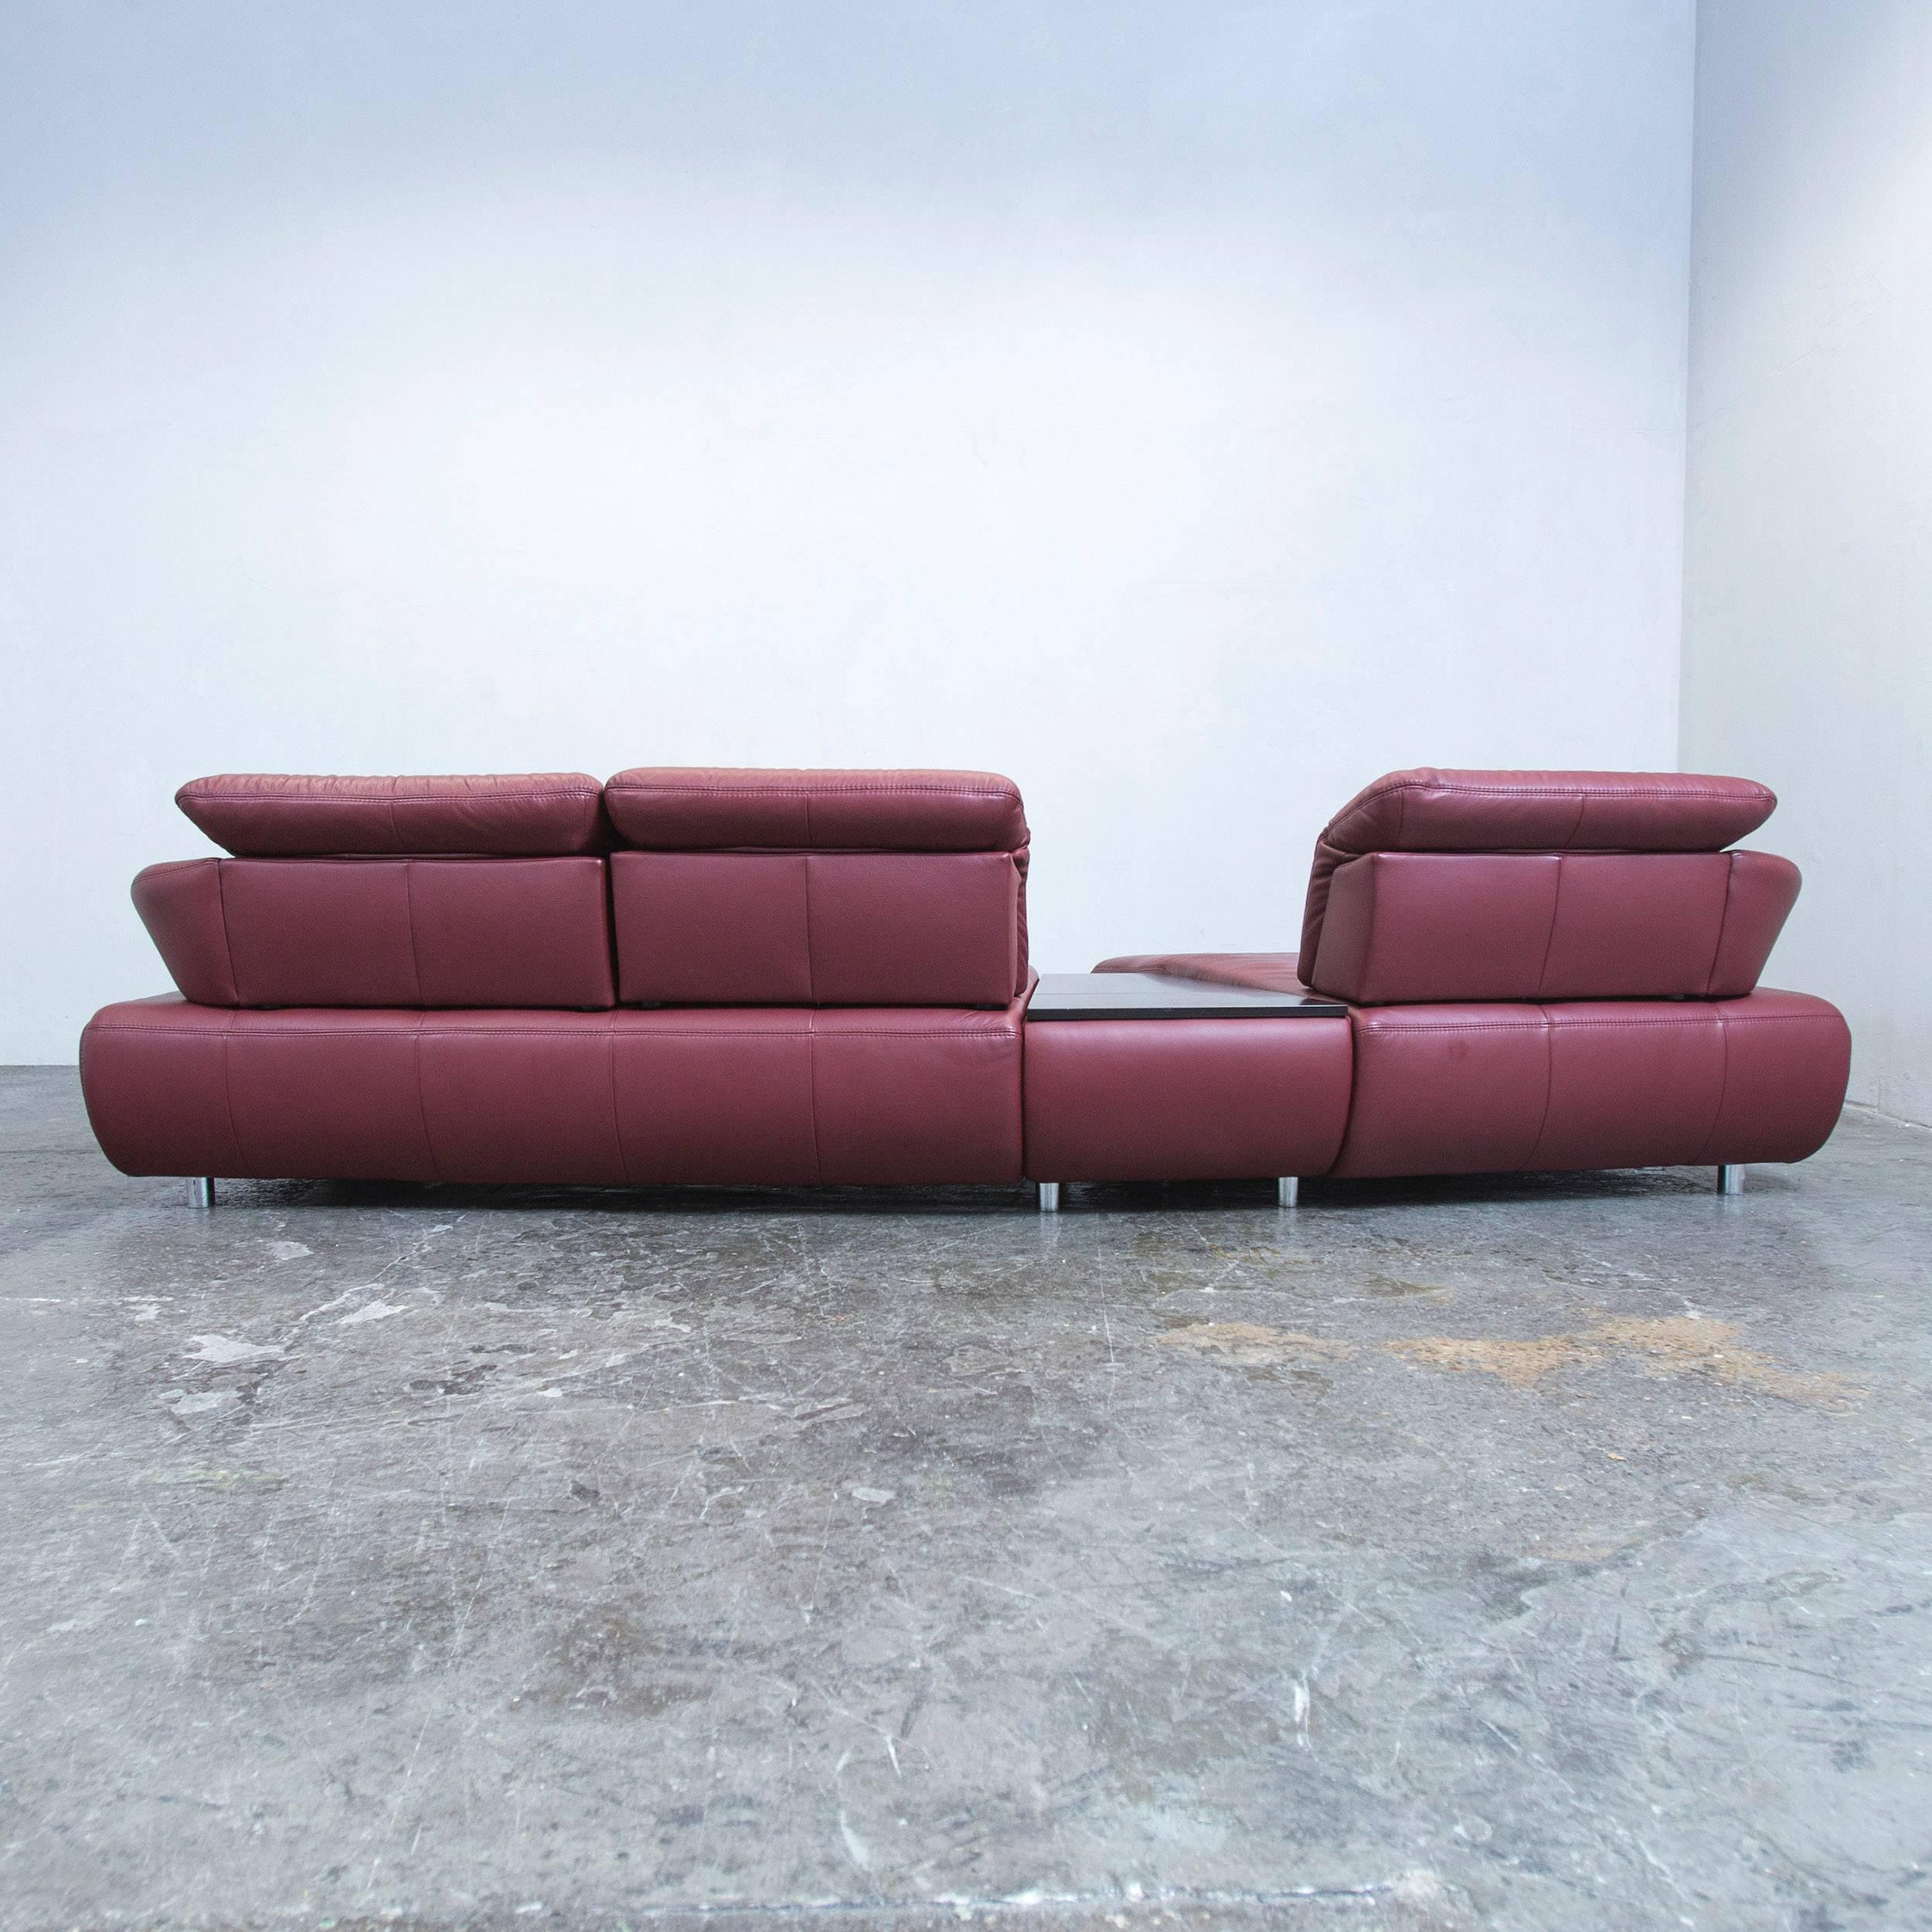 Recamiere Design Designer Corner Sofa Bordeaux Red Leather Couch Function Recamiere Modern